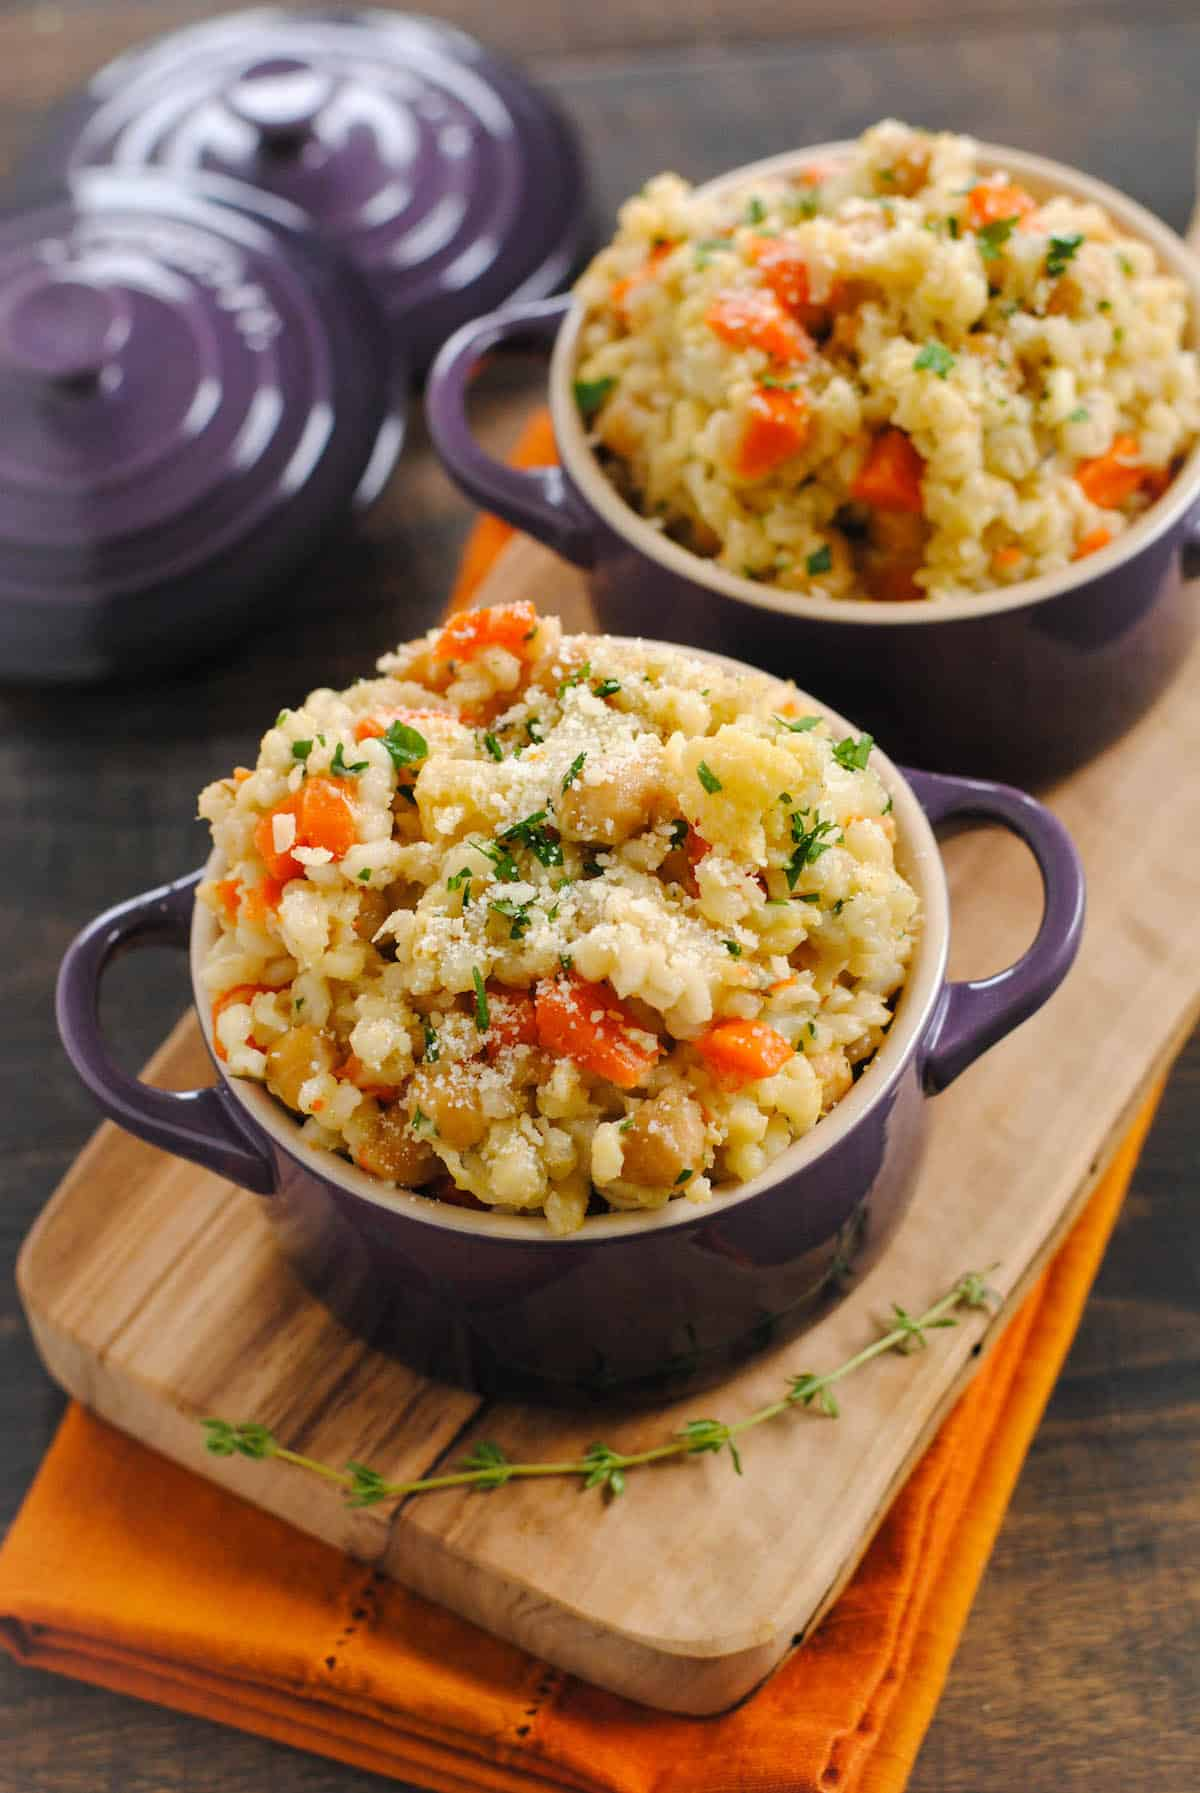 When you make this Slow Cooker Barley & Chickpea Risotto, your crock pot does all the work for you! Slow cooked whole grains packed with chickpeas and vegetables.| foxeslovelemons.com